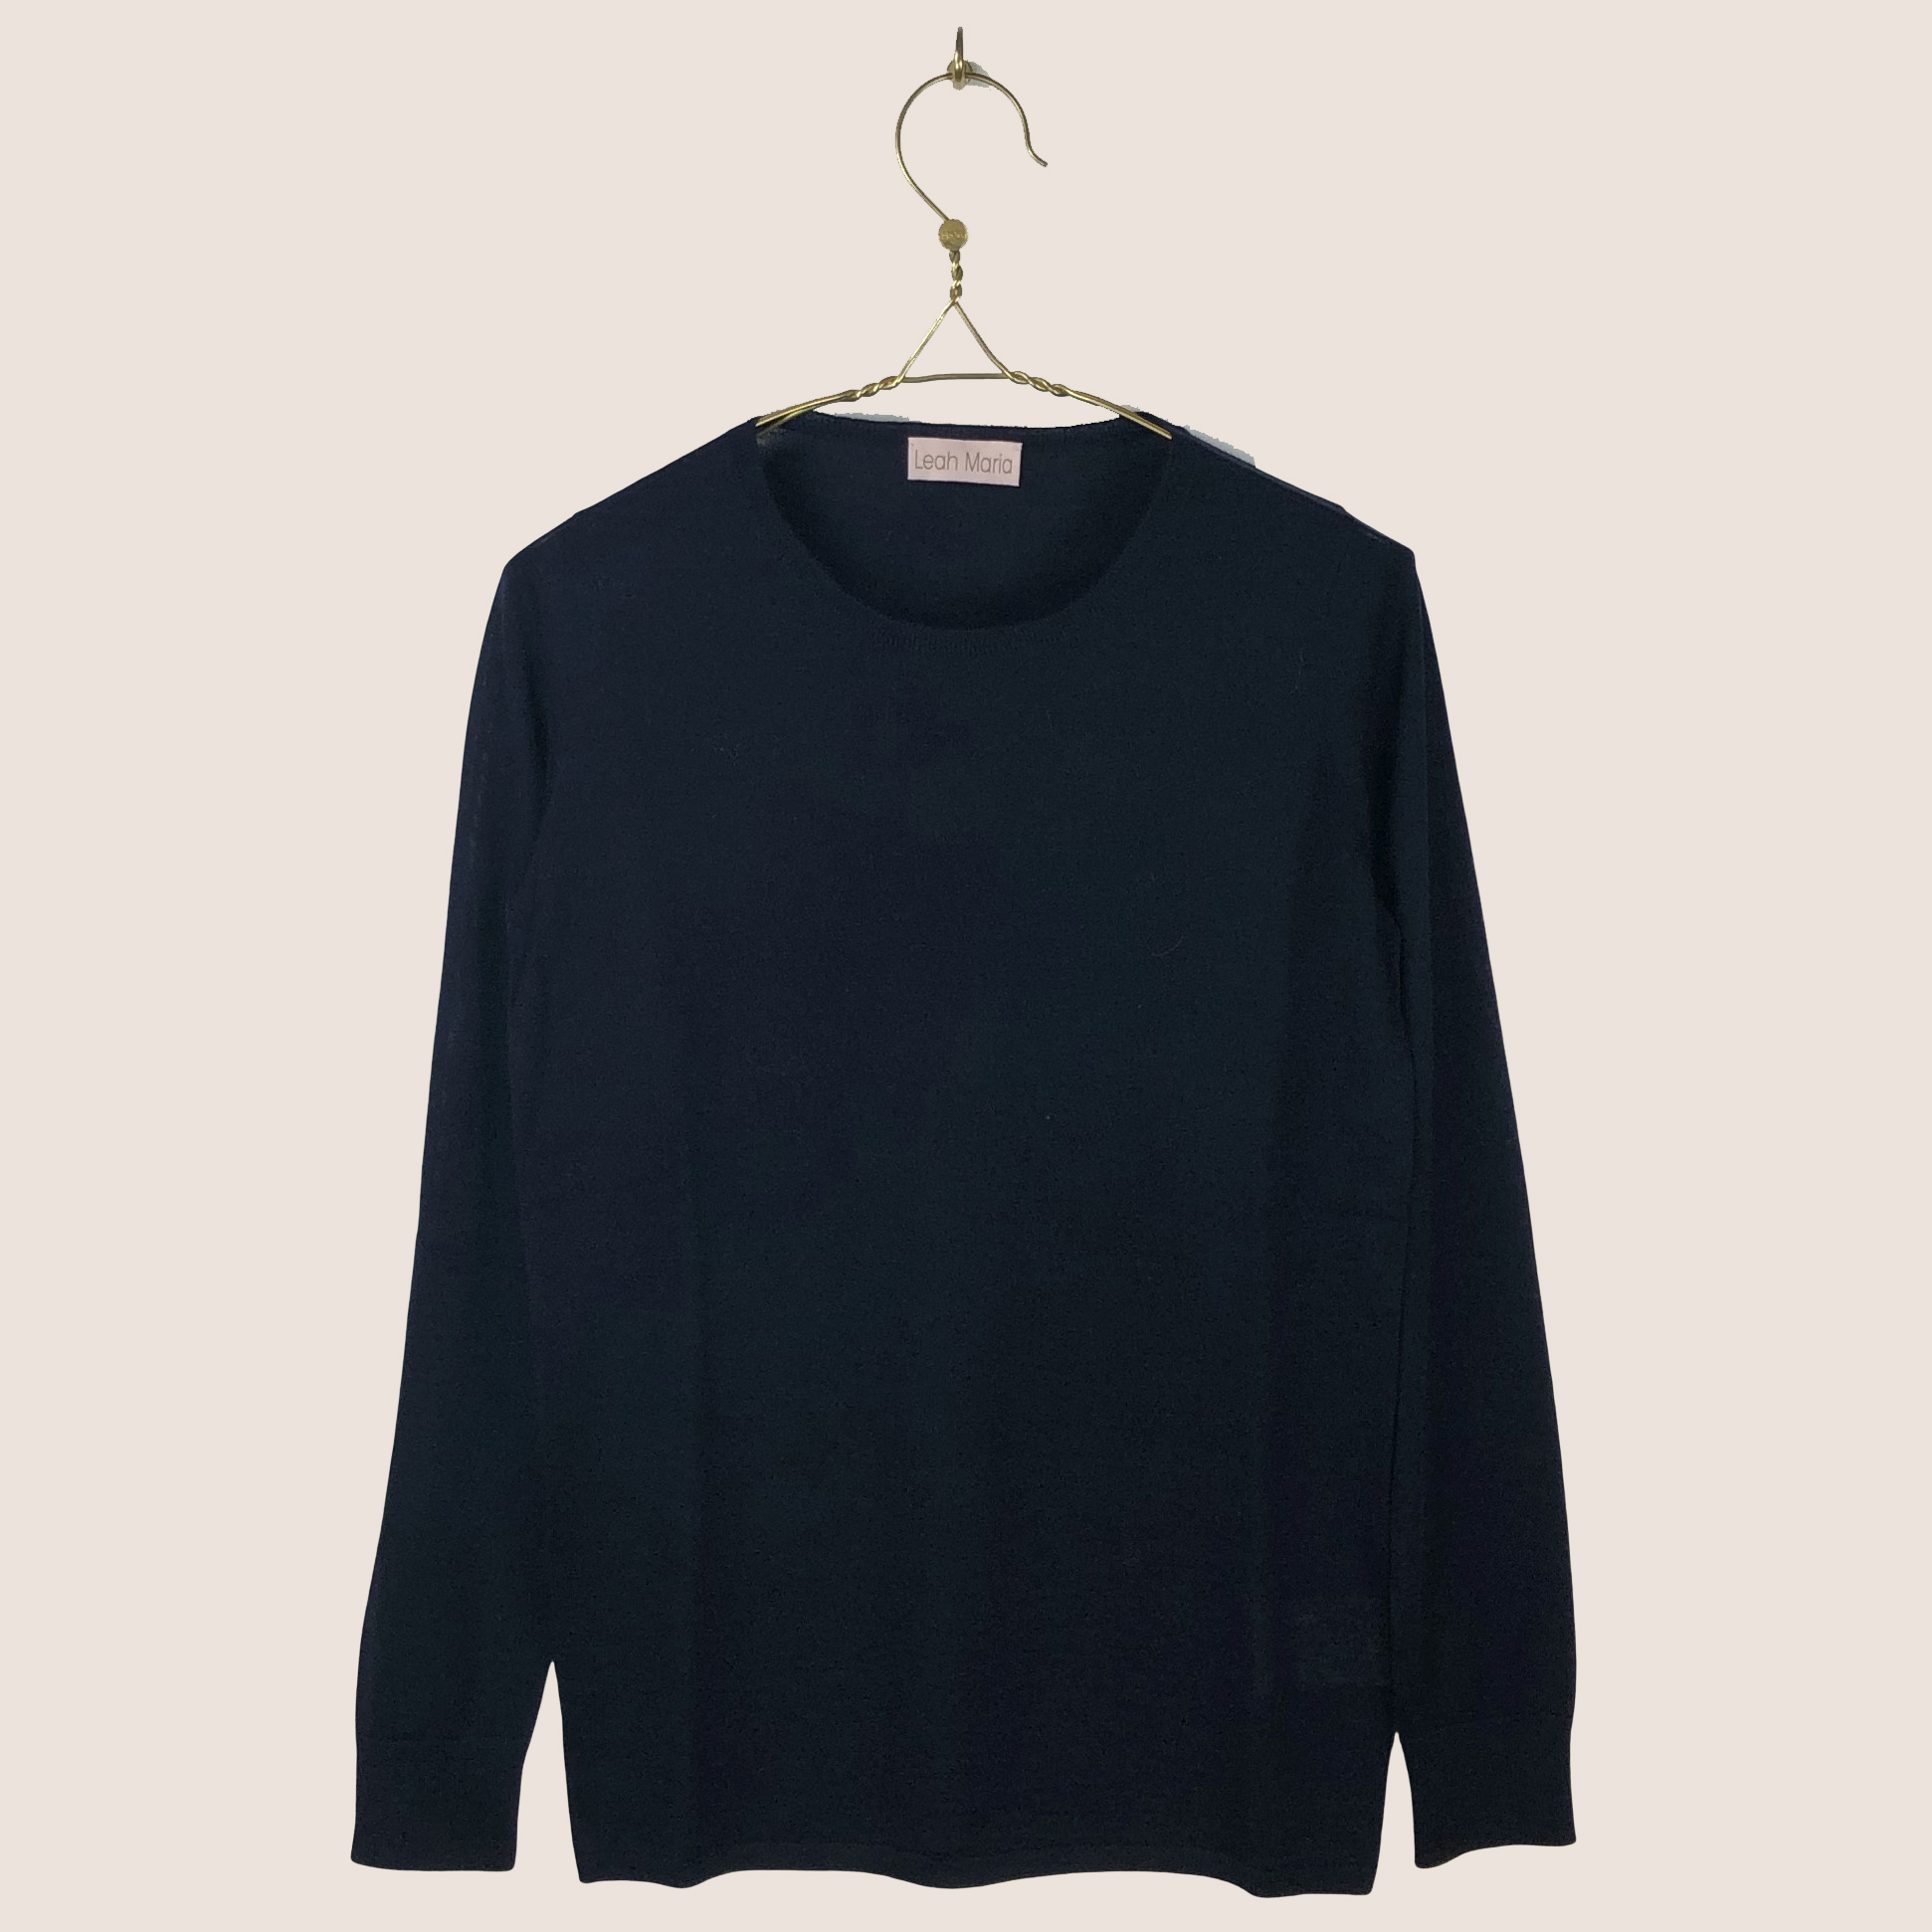 Leah Maria Signature Knit